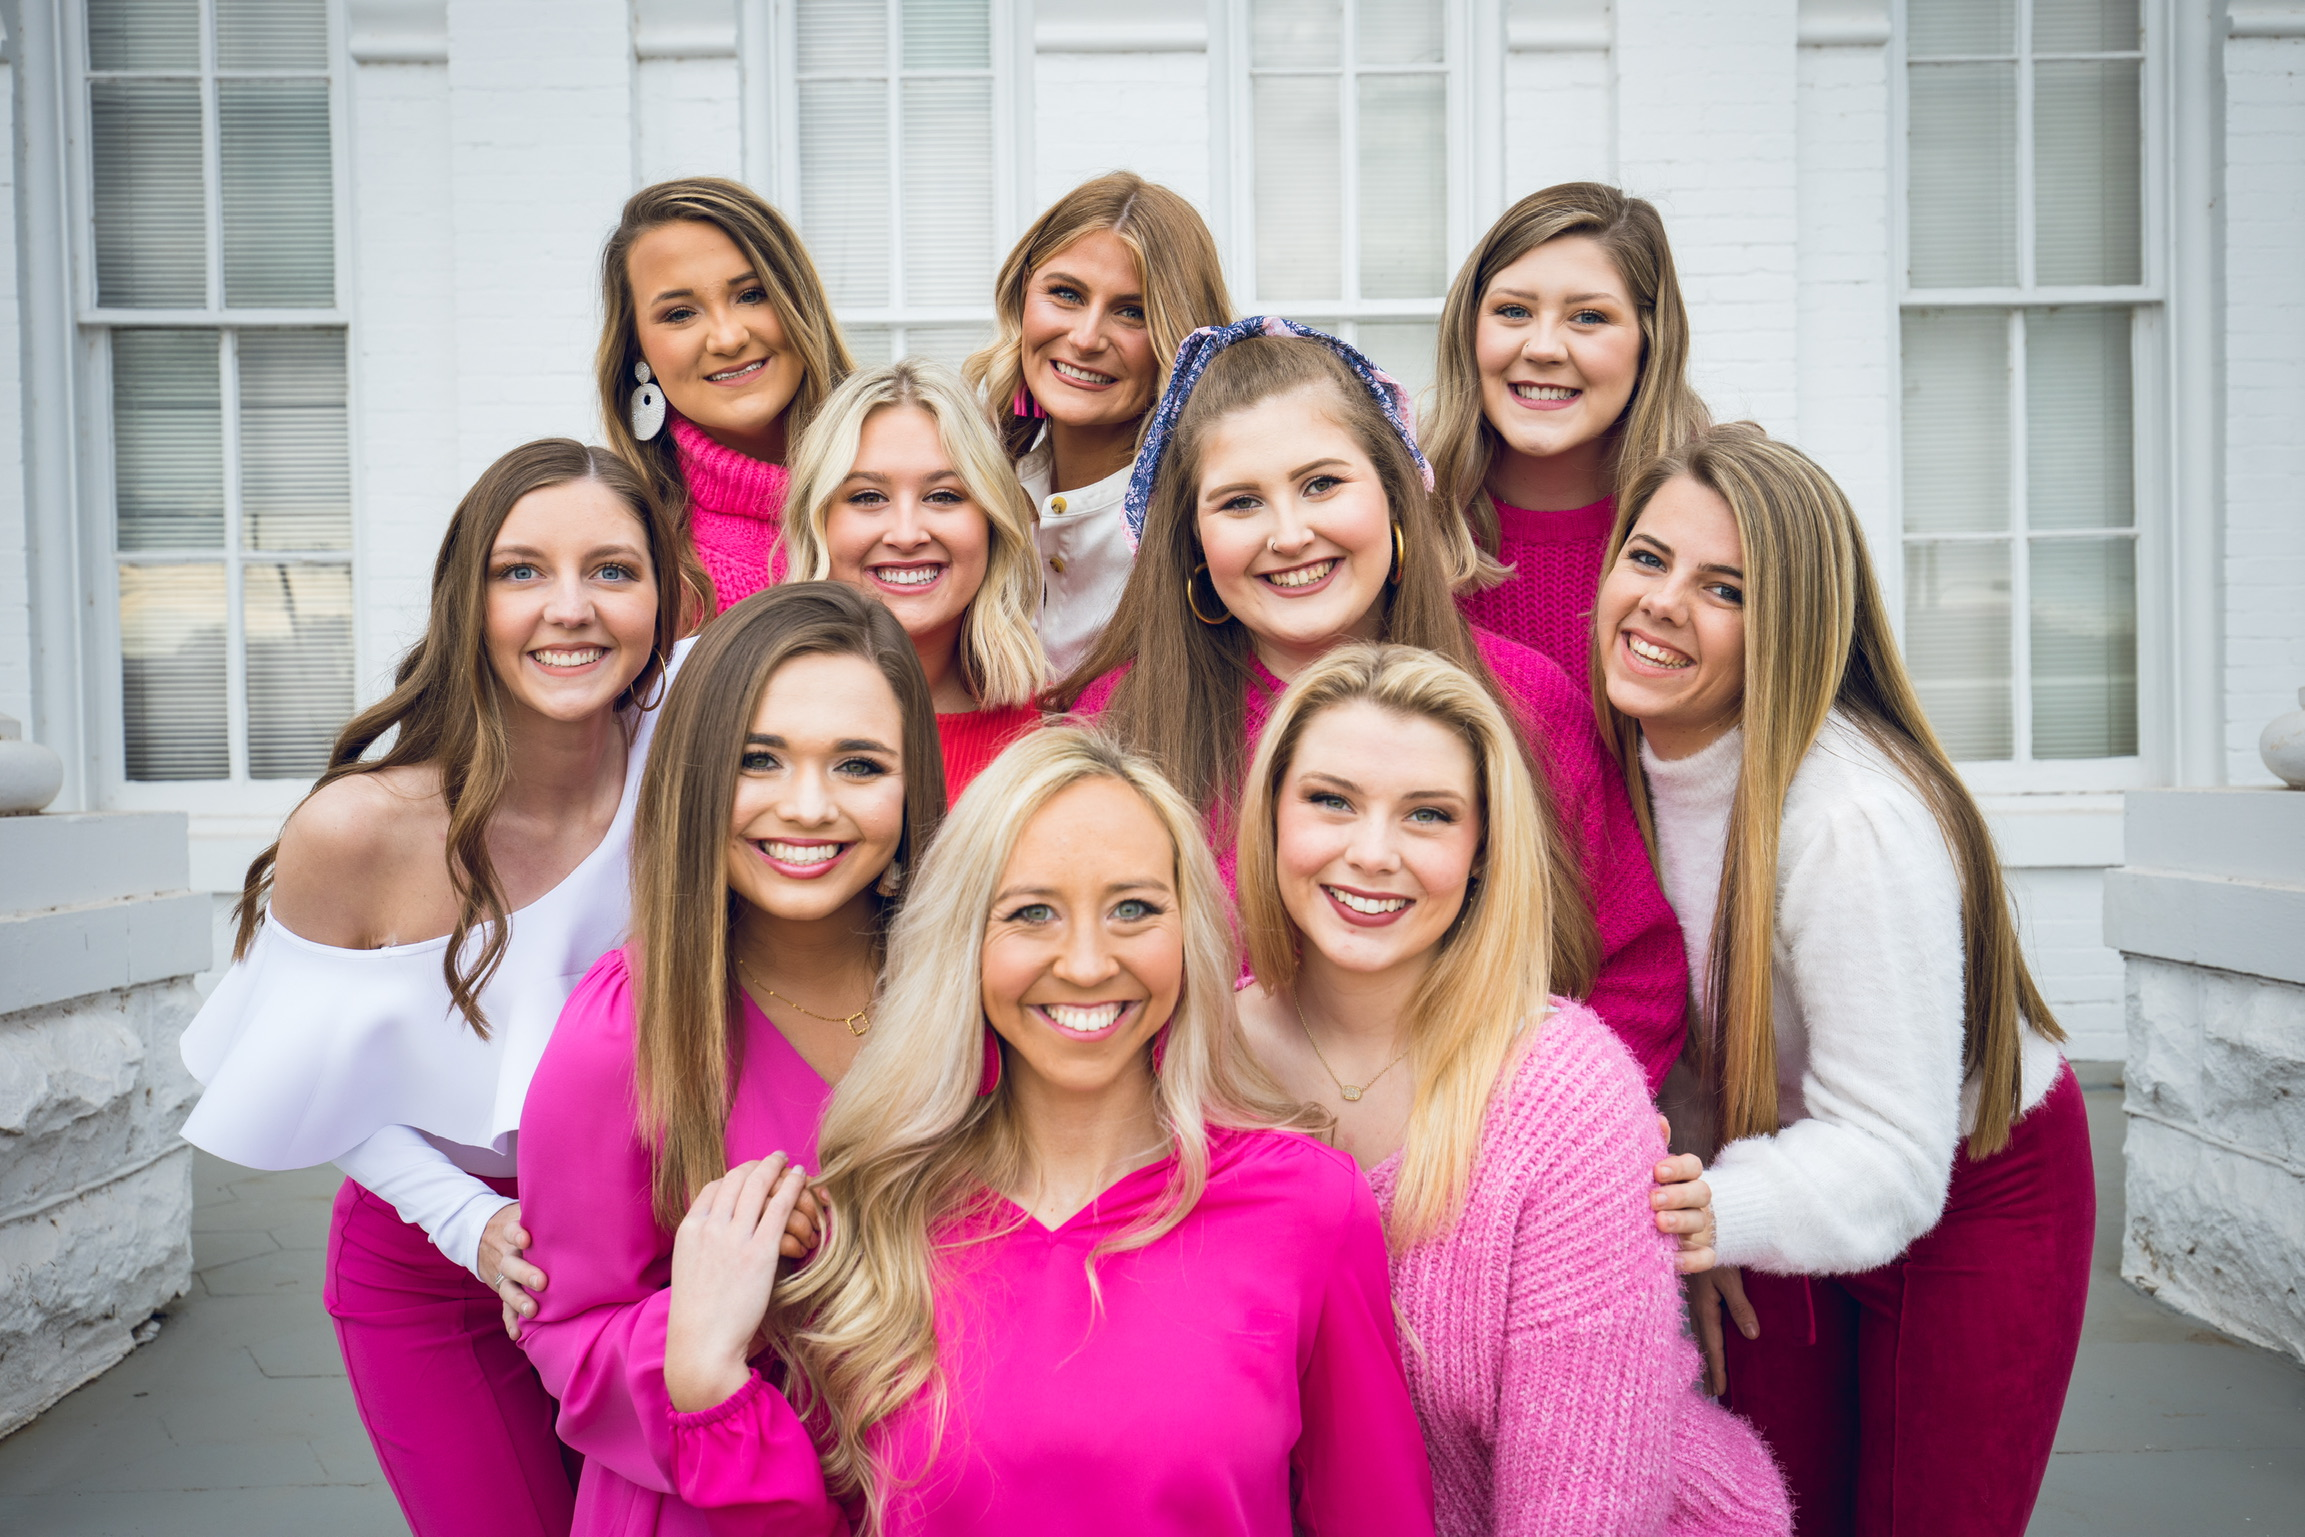 10 women in pink outfits gather and smile for a photo.